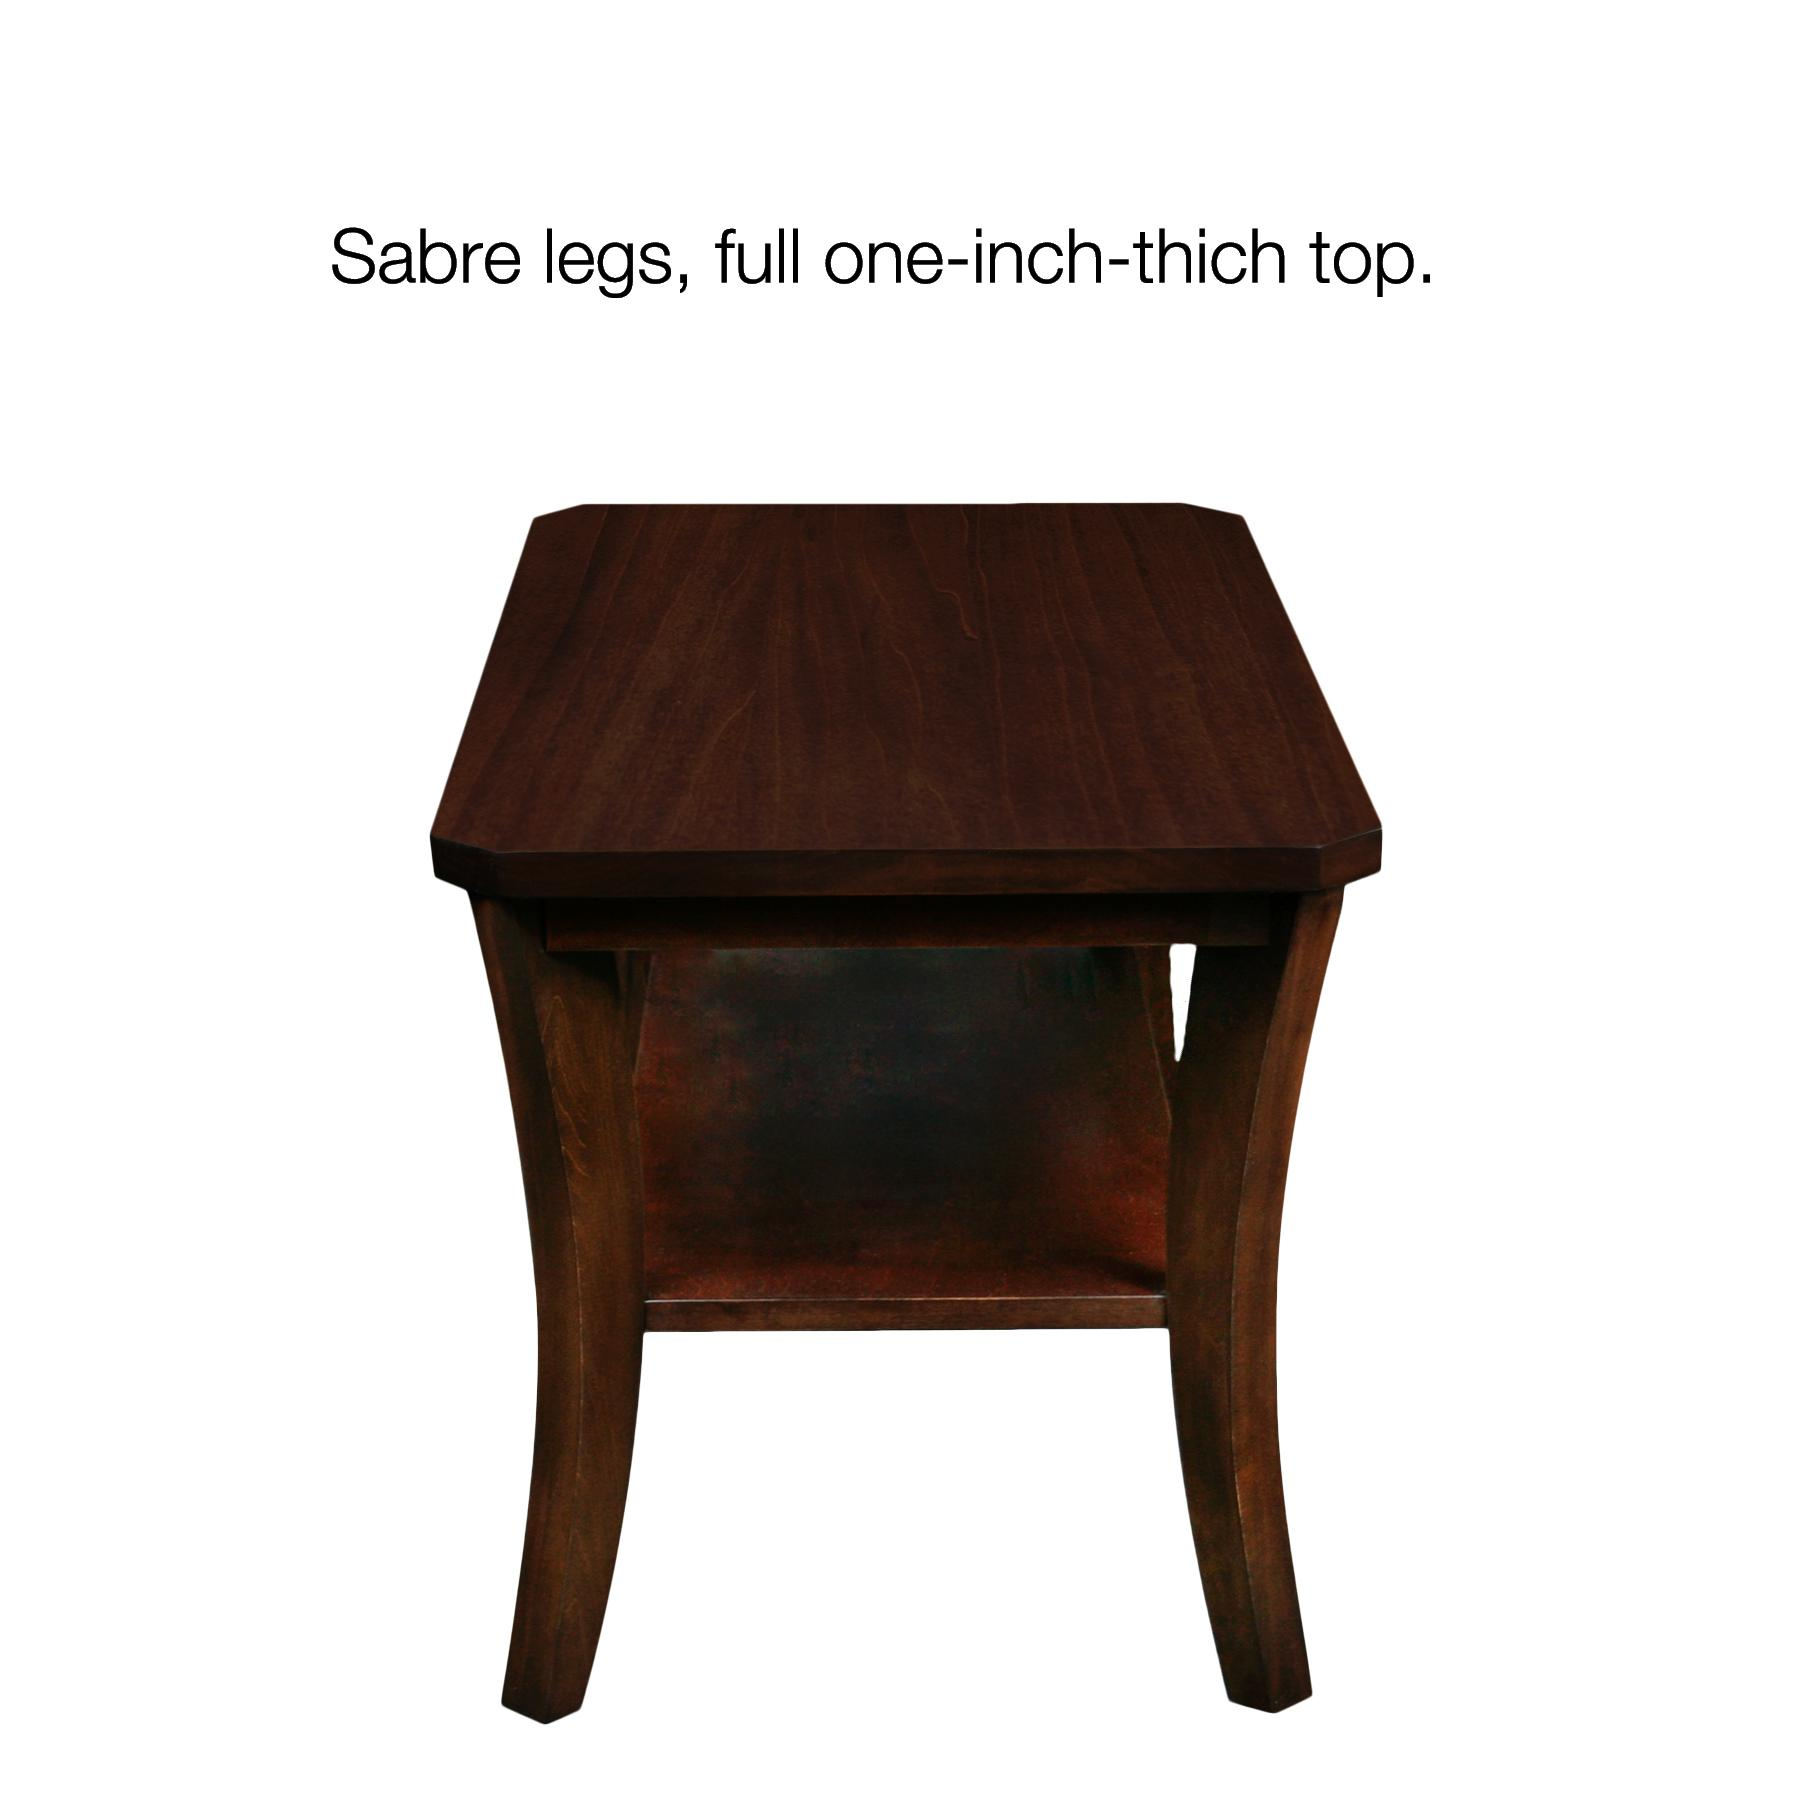 Coffee table cocktail table living room furniture for Coffee tables on amazon